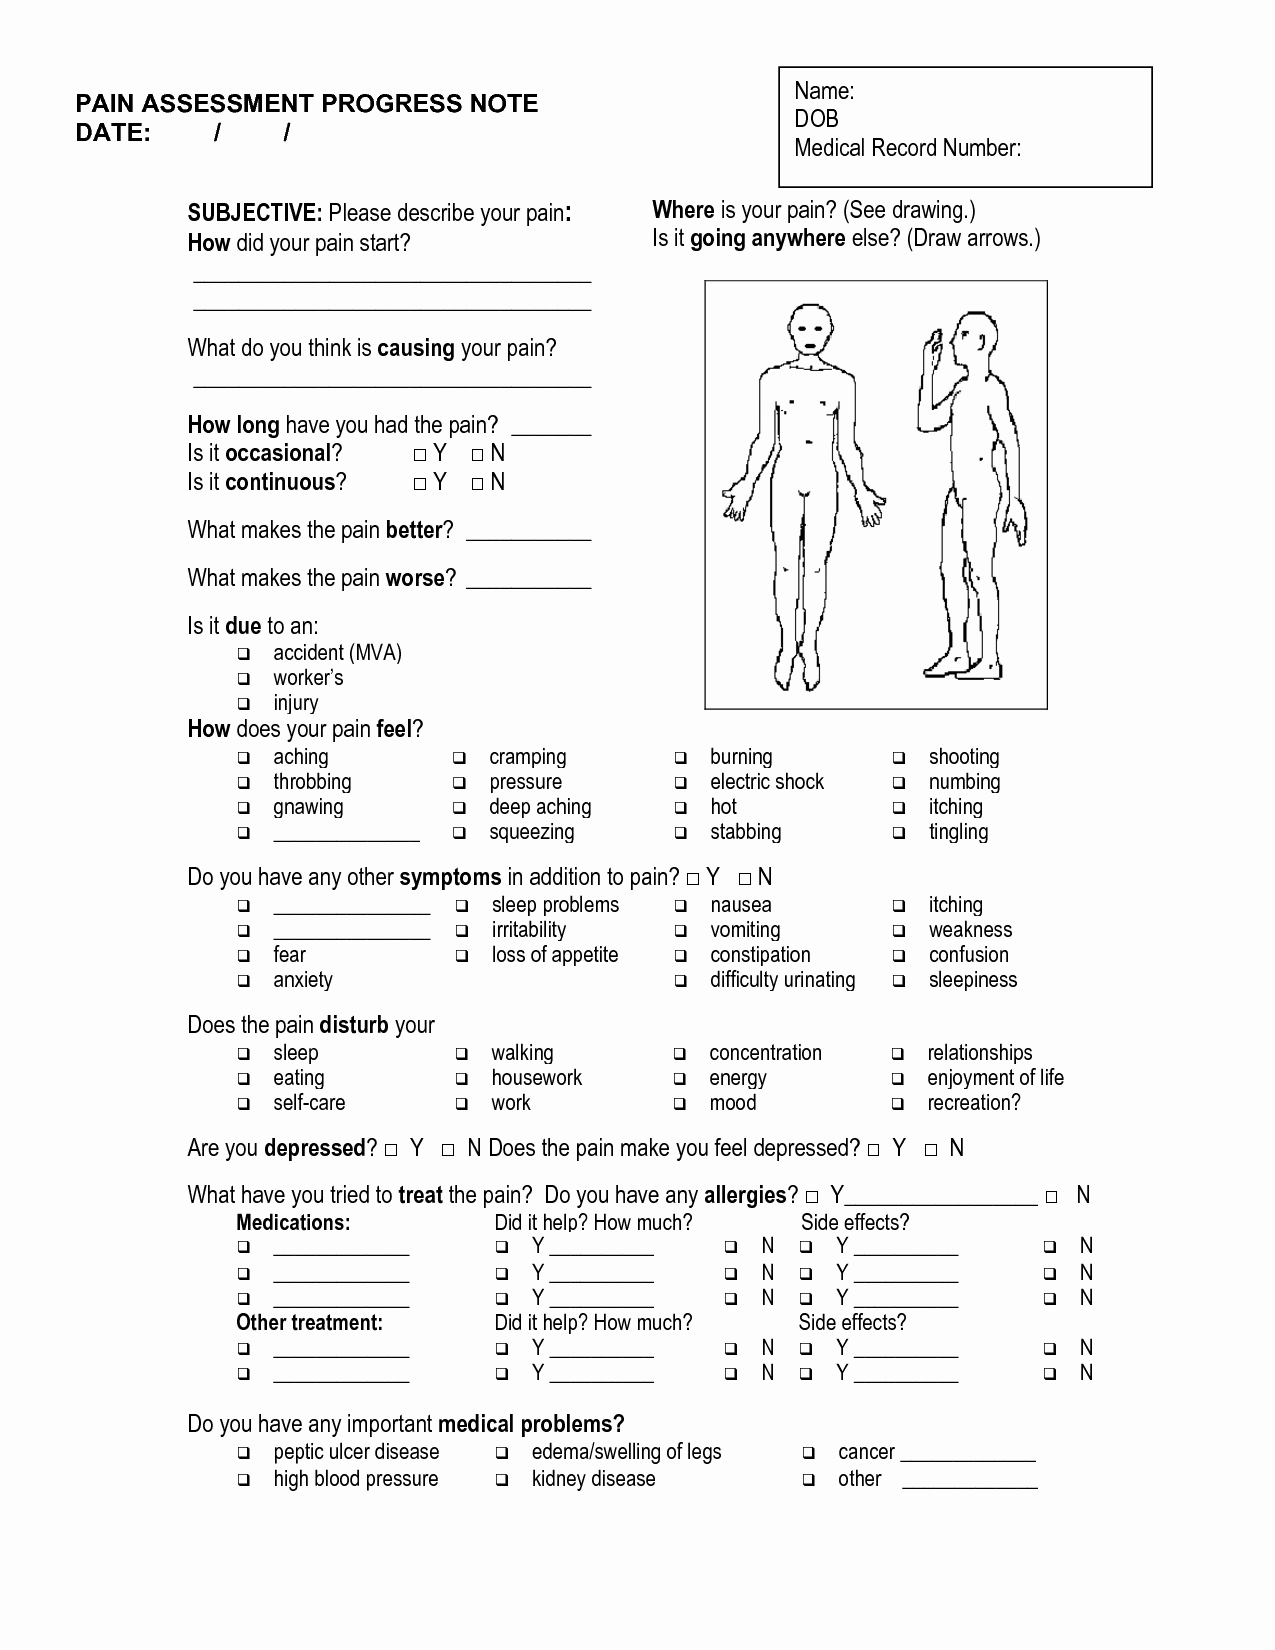 Soap therapy Note Template Fresh 10 Best Of Free Massage therapy soap Note forms